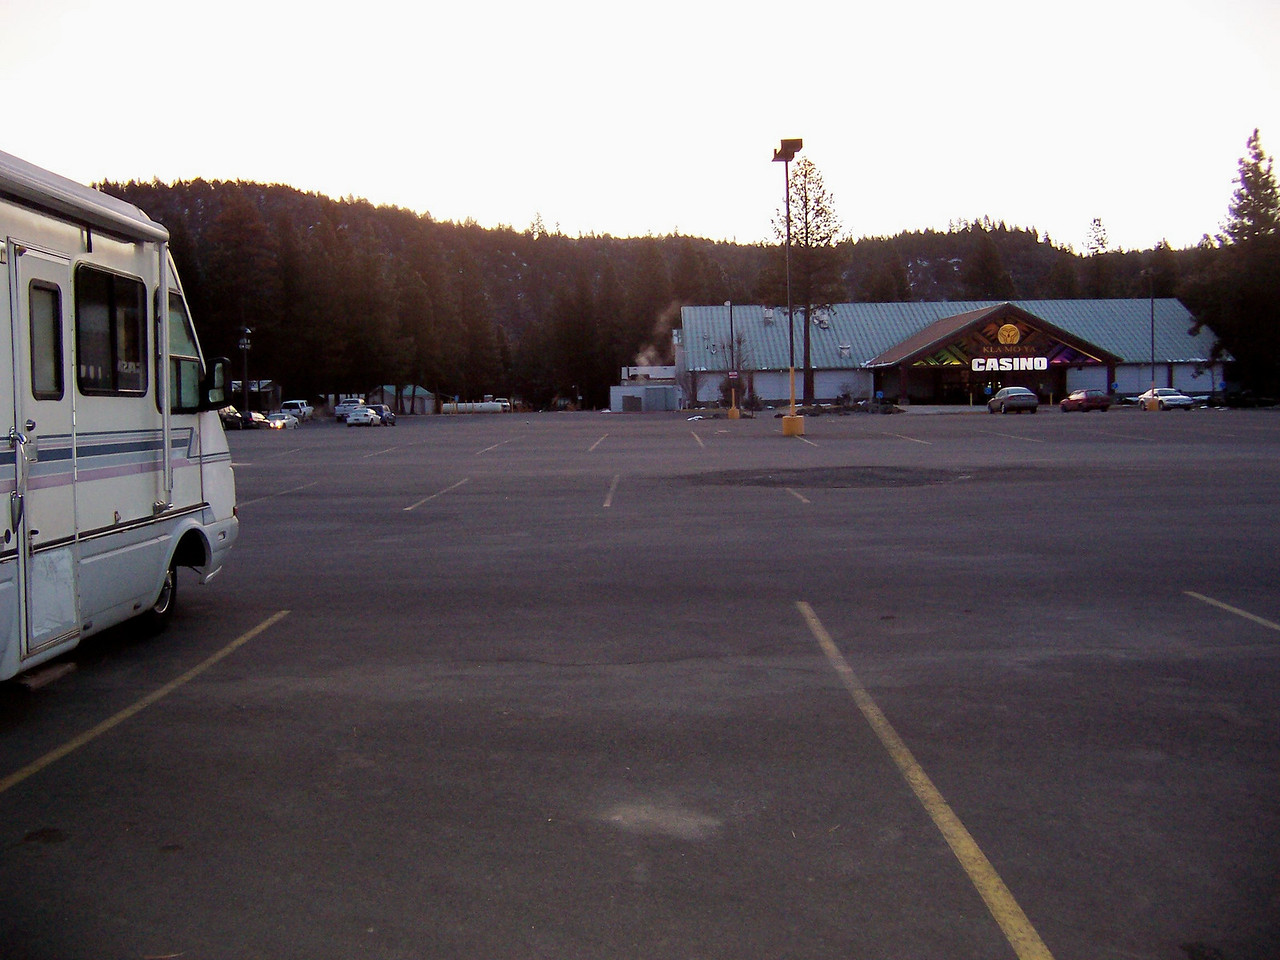 Day 1, Saturday, March 13th, we drove to the KLAMOYA Casino near Klamath Falls, OR. We put 2314 miles on the motor home during the entire journey.